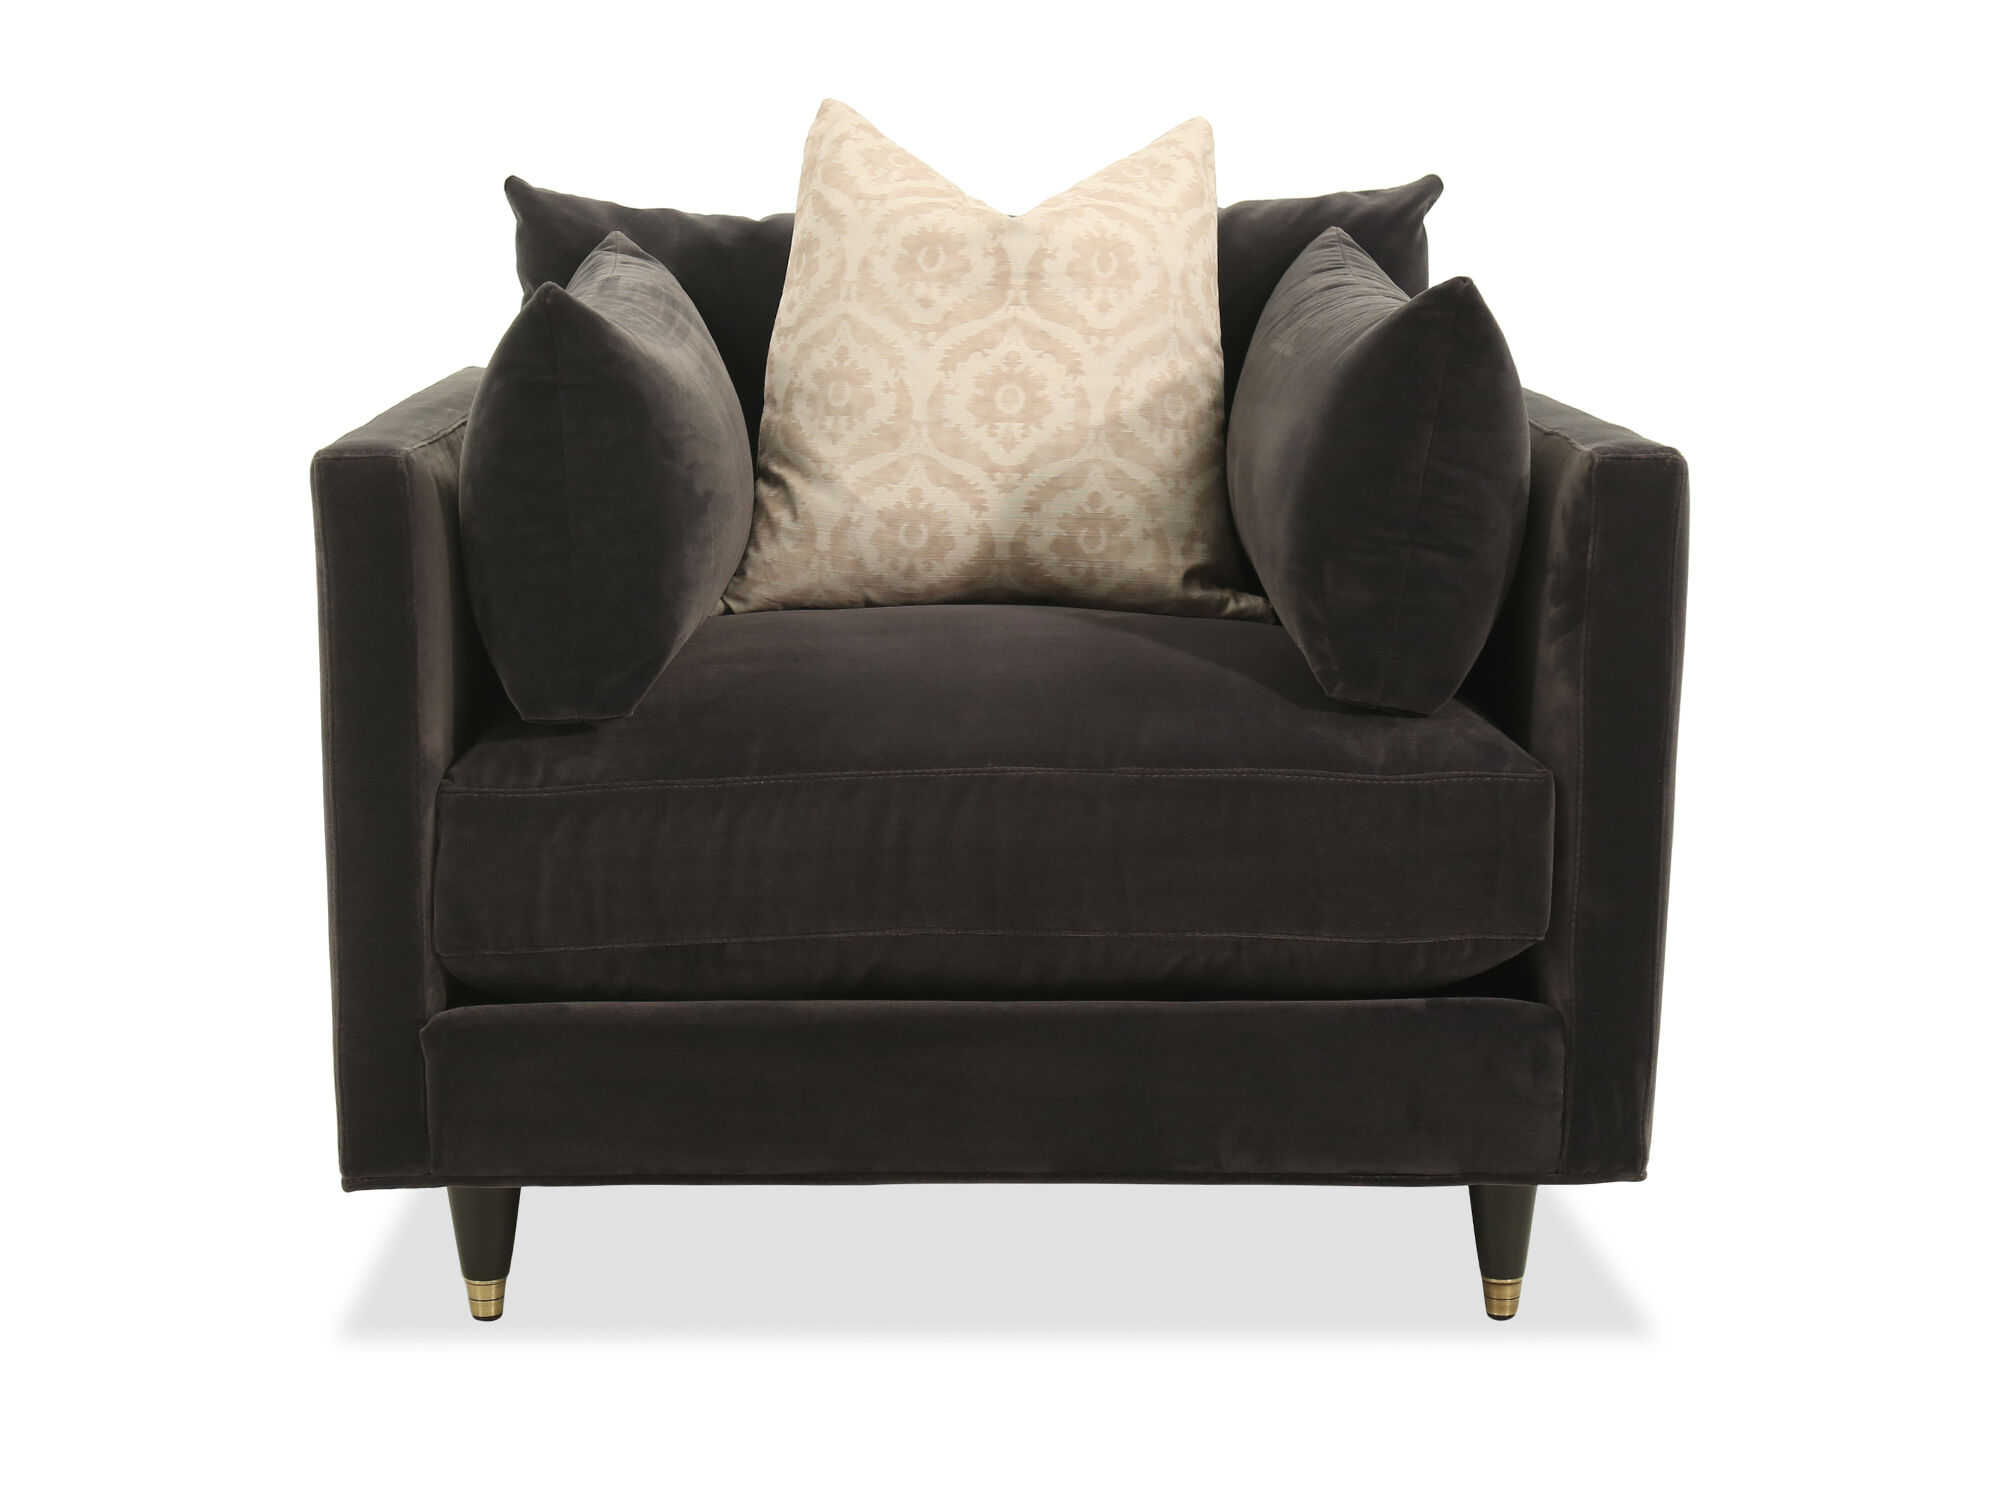 LowProfile Casual Arm Chair in Charcoal  Mathis Brothers